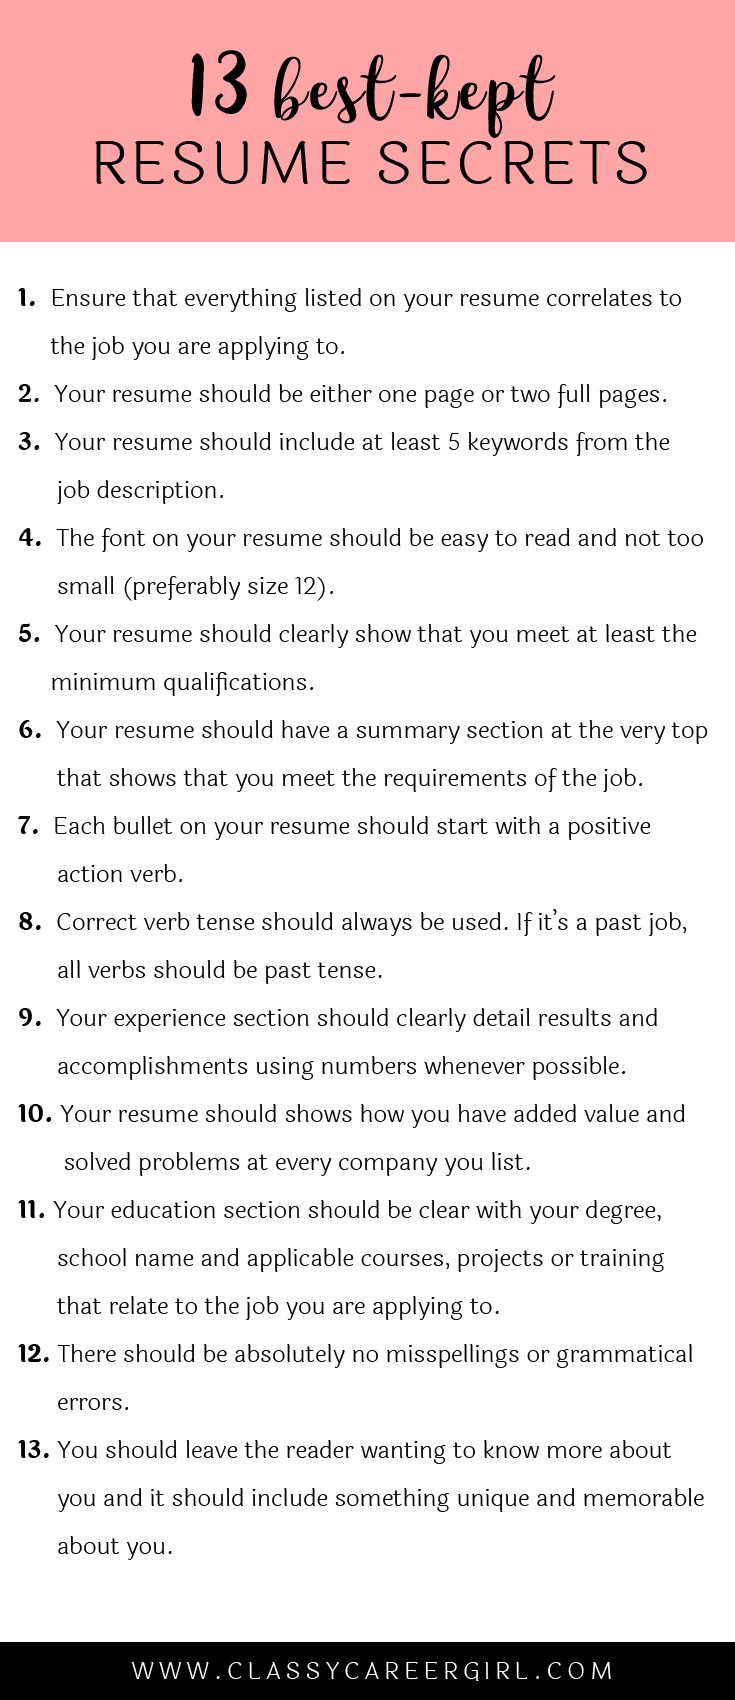 Opposenewapstandardsus  Inspiring  Ideas About Resume On Pinterest  Cv Format Resume Cv And  With Great Some Hiring Managers Will Toss Your Resume Out If You Dont Know These  With Beautiful Resume Online Builder Also How To Write A Resume For Your First Job In Addition Sample Of A Good Resume And Beginners Acting Resume As Well As Sample Housekeeping Resume Additionally Create A Resume Free Download From Pinterestcom With Opposenewapstandardsus  Great  Ideas About Resume On Pinterest  Cv Format Resume Cv And  With Beautiful Some Hiring Managers Will Toss Your Resume Out If You Dont Know These  And Inspiring Resume Online Builder Also How To Write A Resume For Your First Job In Addition Sample Of A Good Resume From Pinterestcom